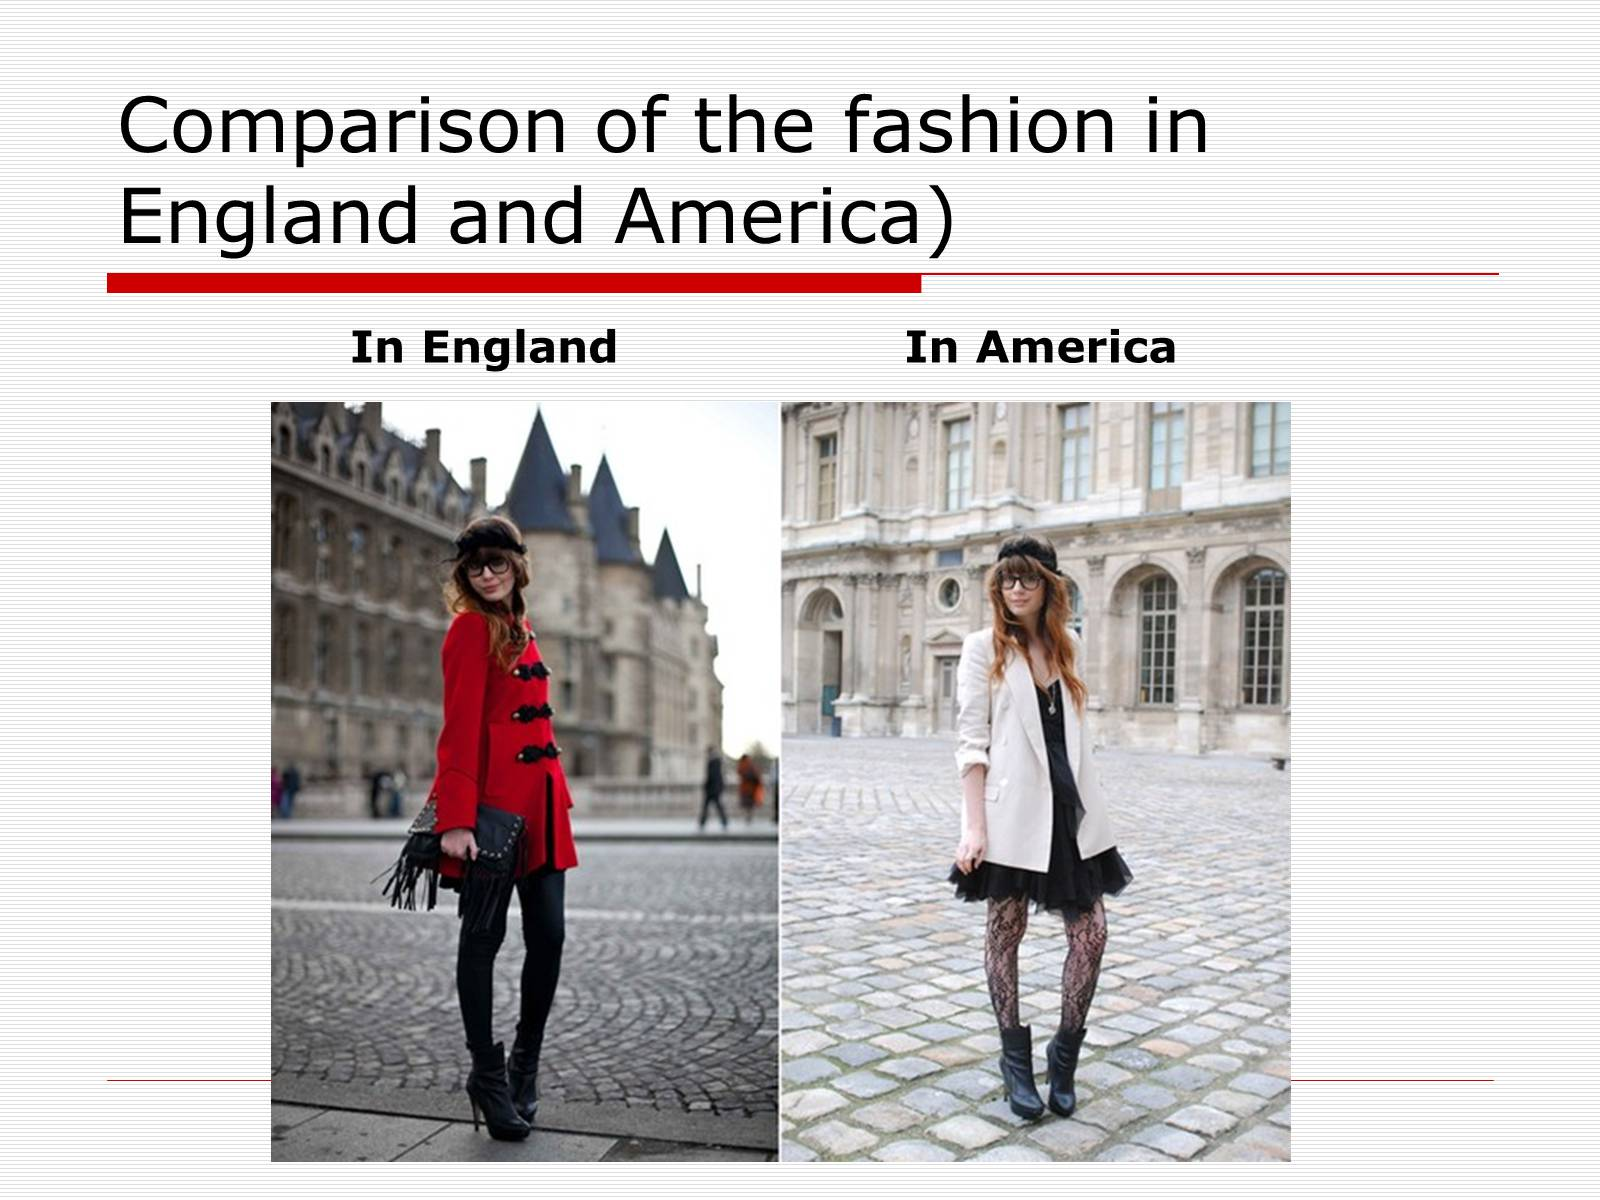 Презентація на тему «Comparison of the fashion in England and America» - Слайд #21